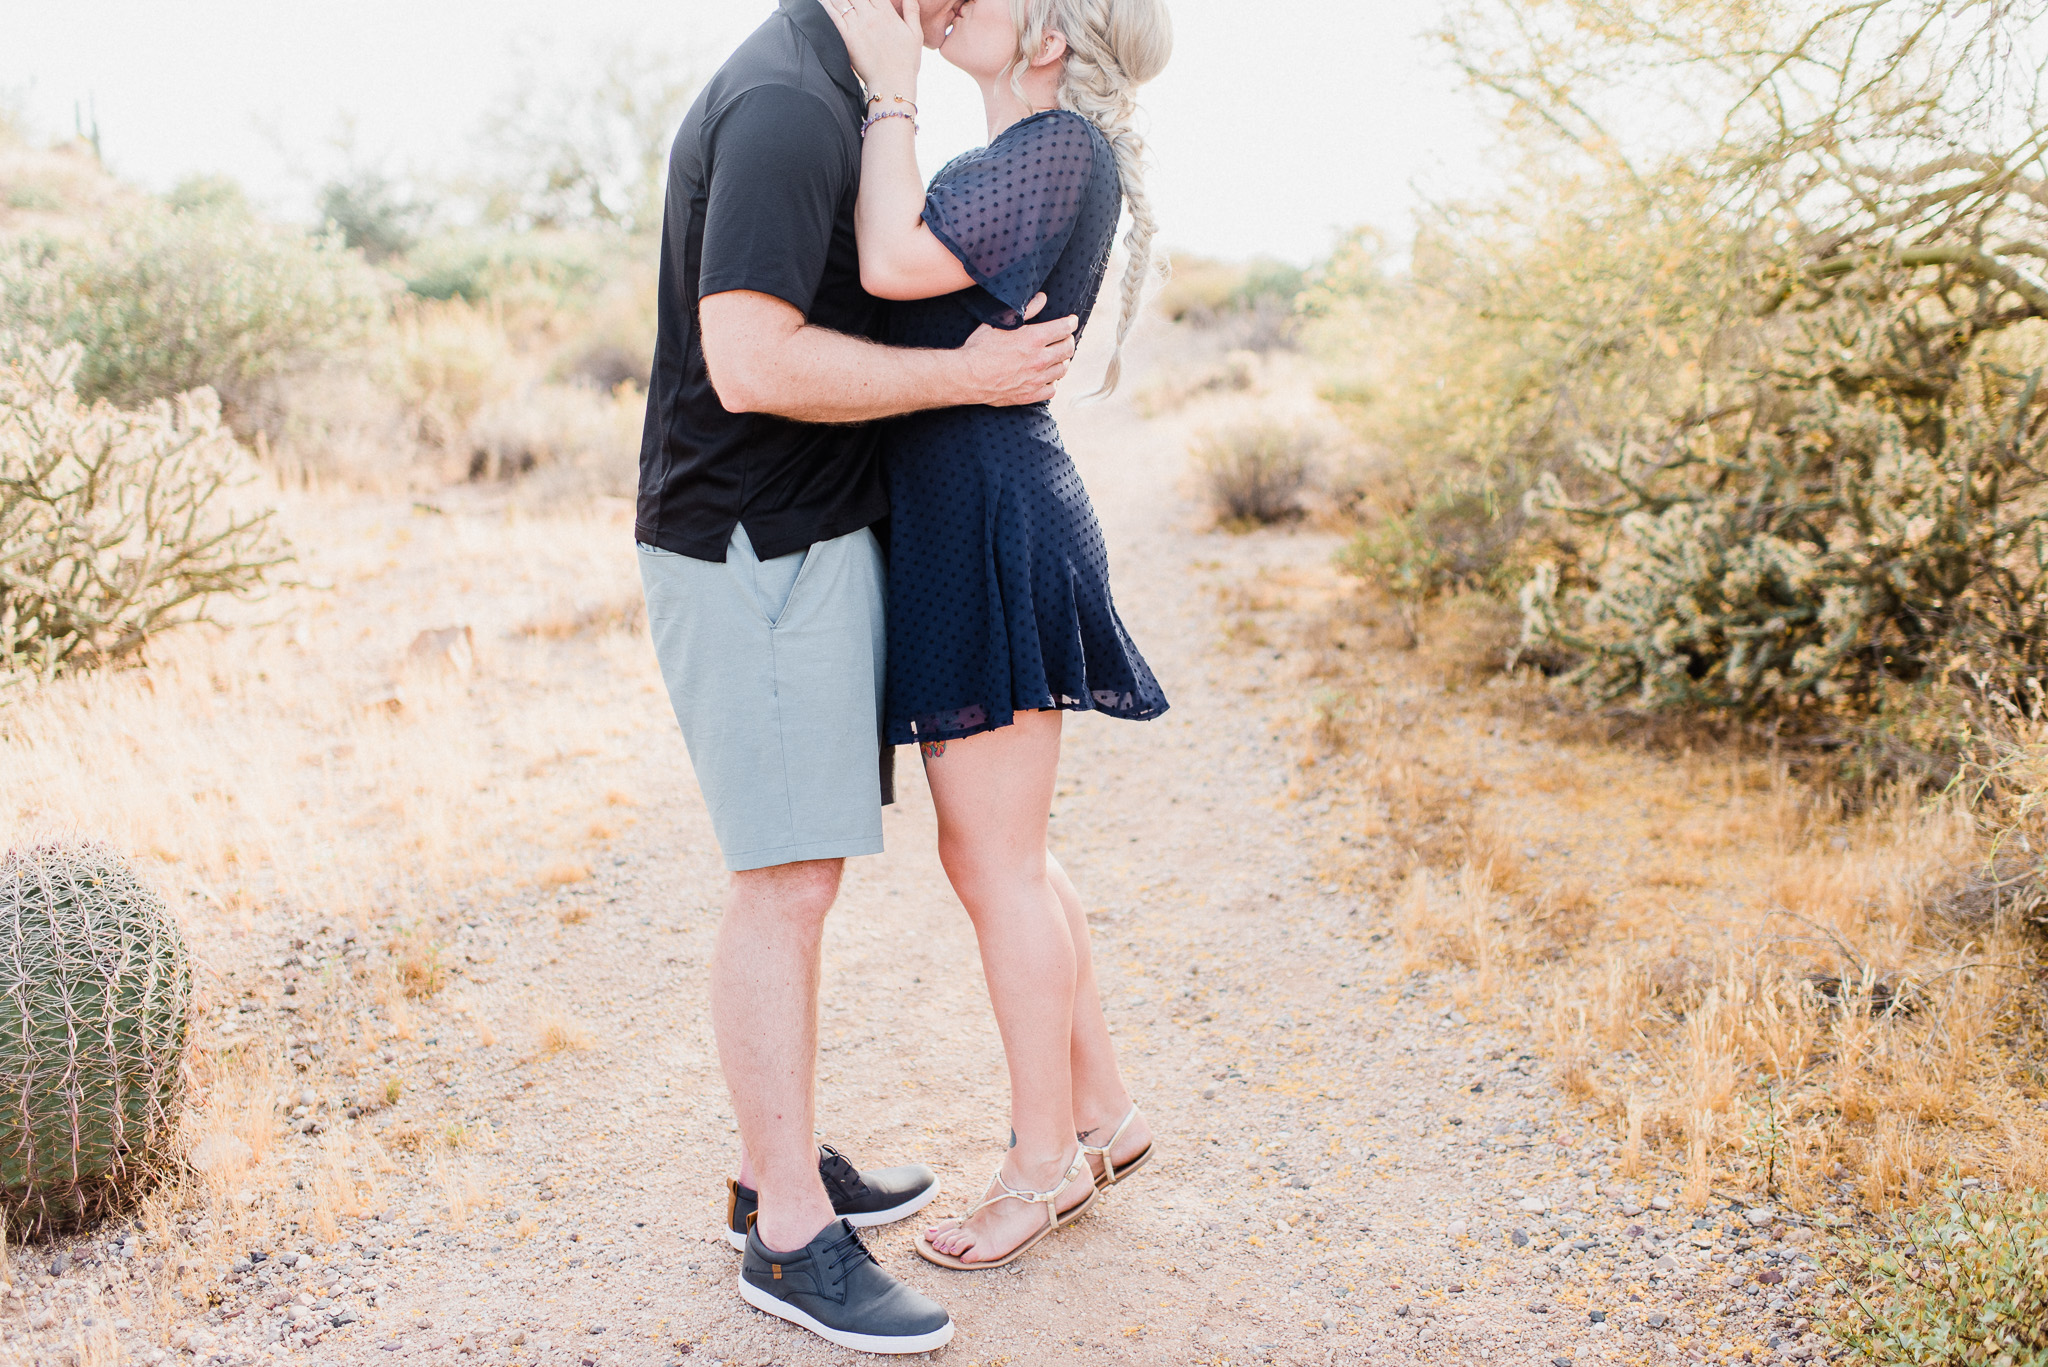 Usery Mountain Regional Park Engagement Session by Jenn Kavanagh Photography